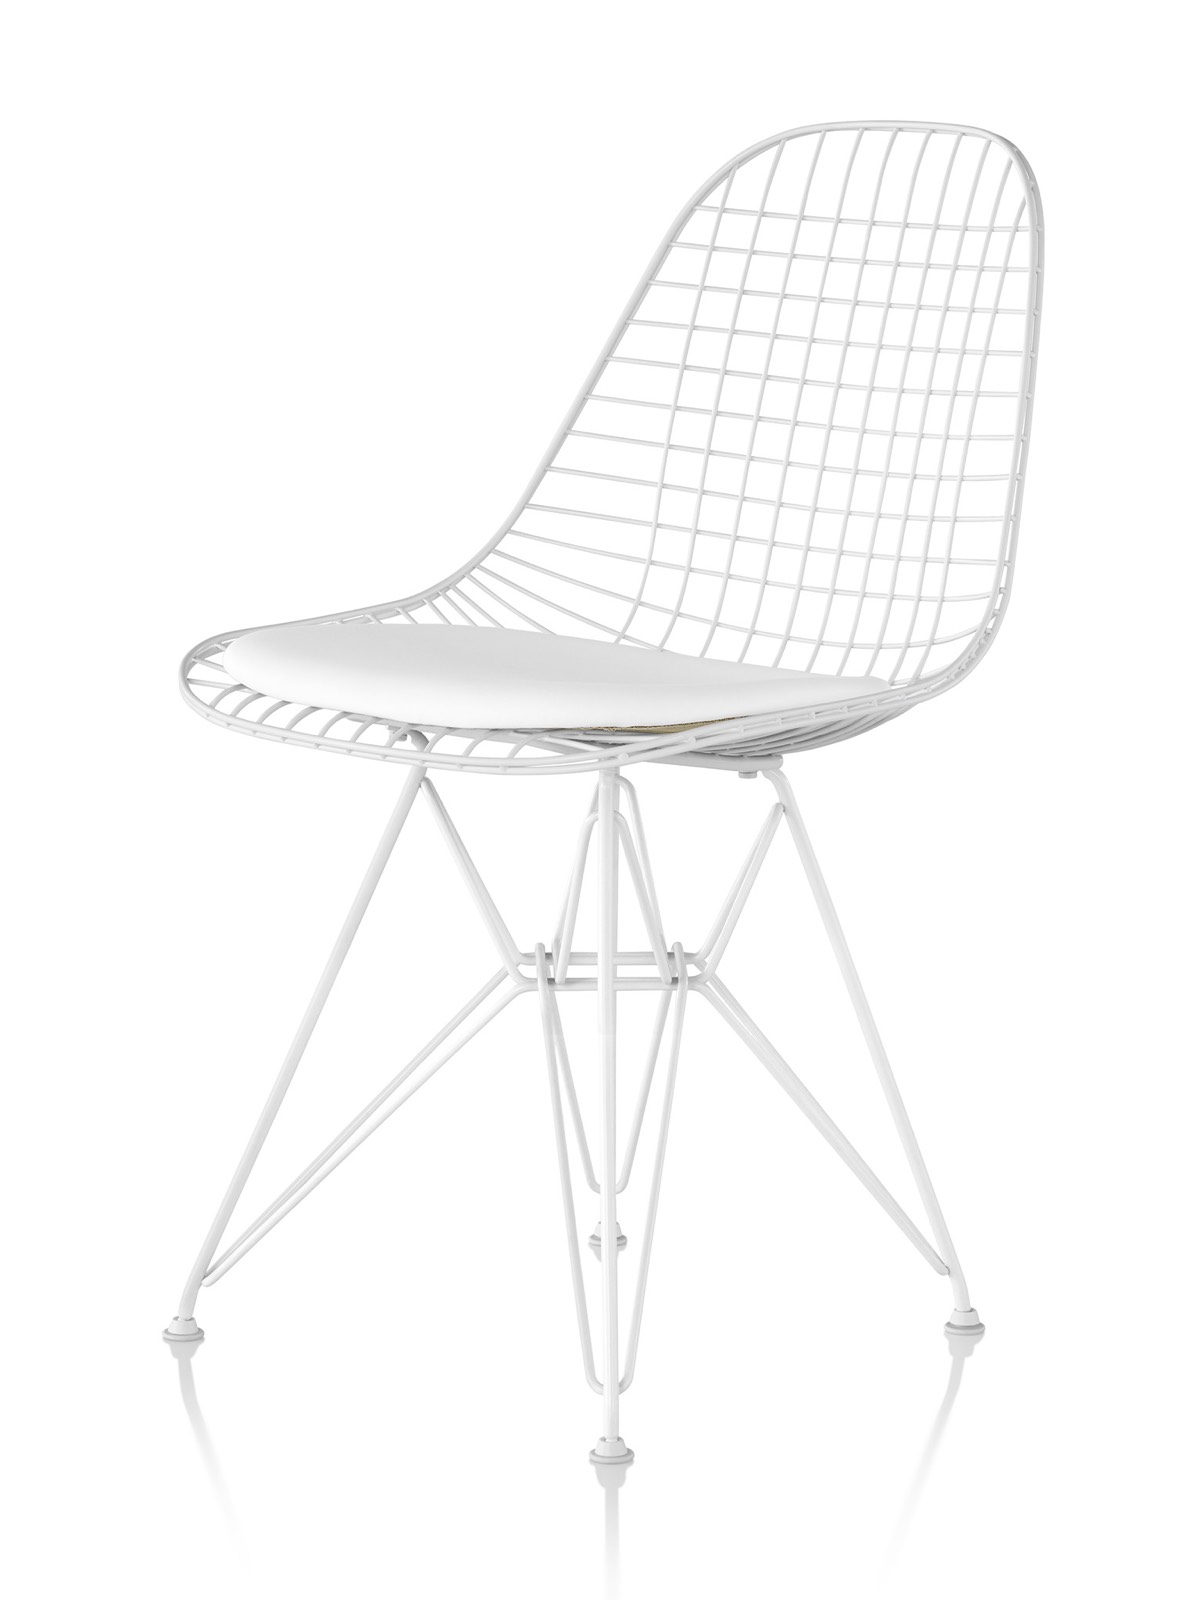 outdoor wire chairs folding chair online pakistan eames side herman miller